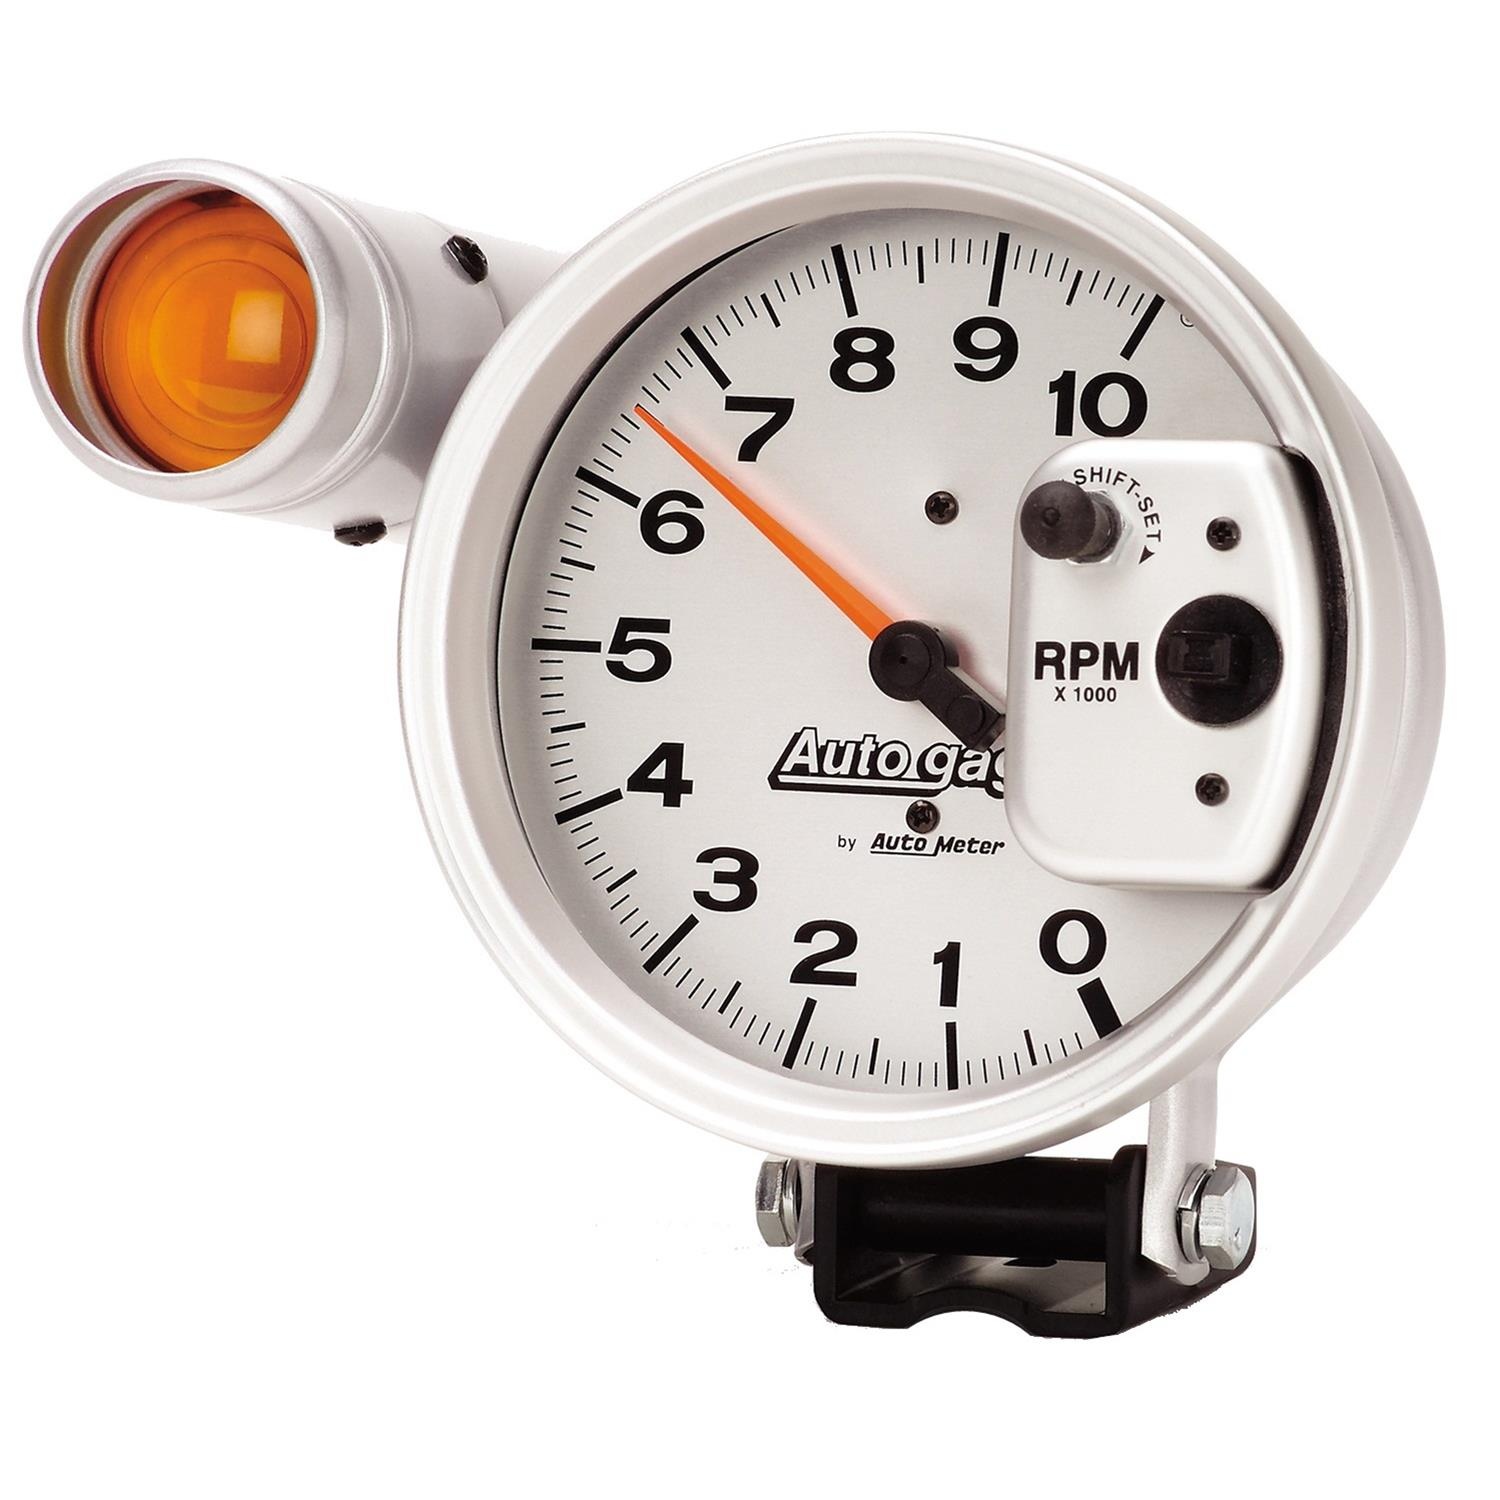 auto gage monster shift lite tachometer 0 10,000 5\